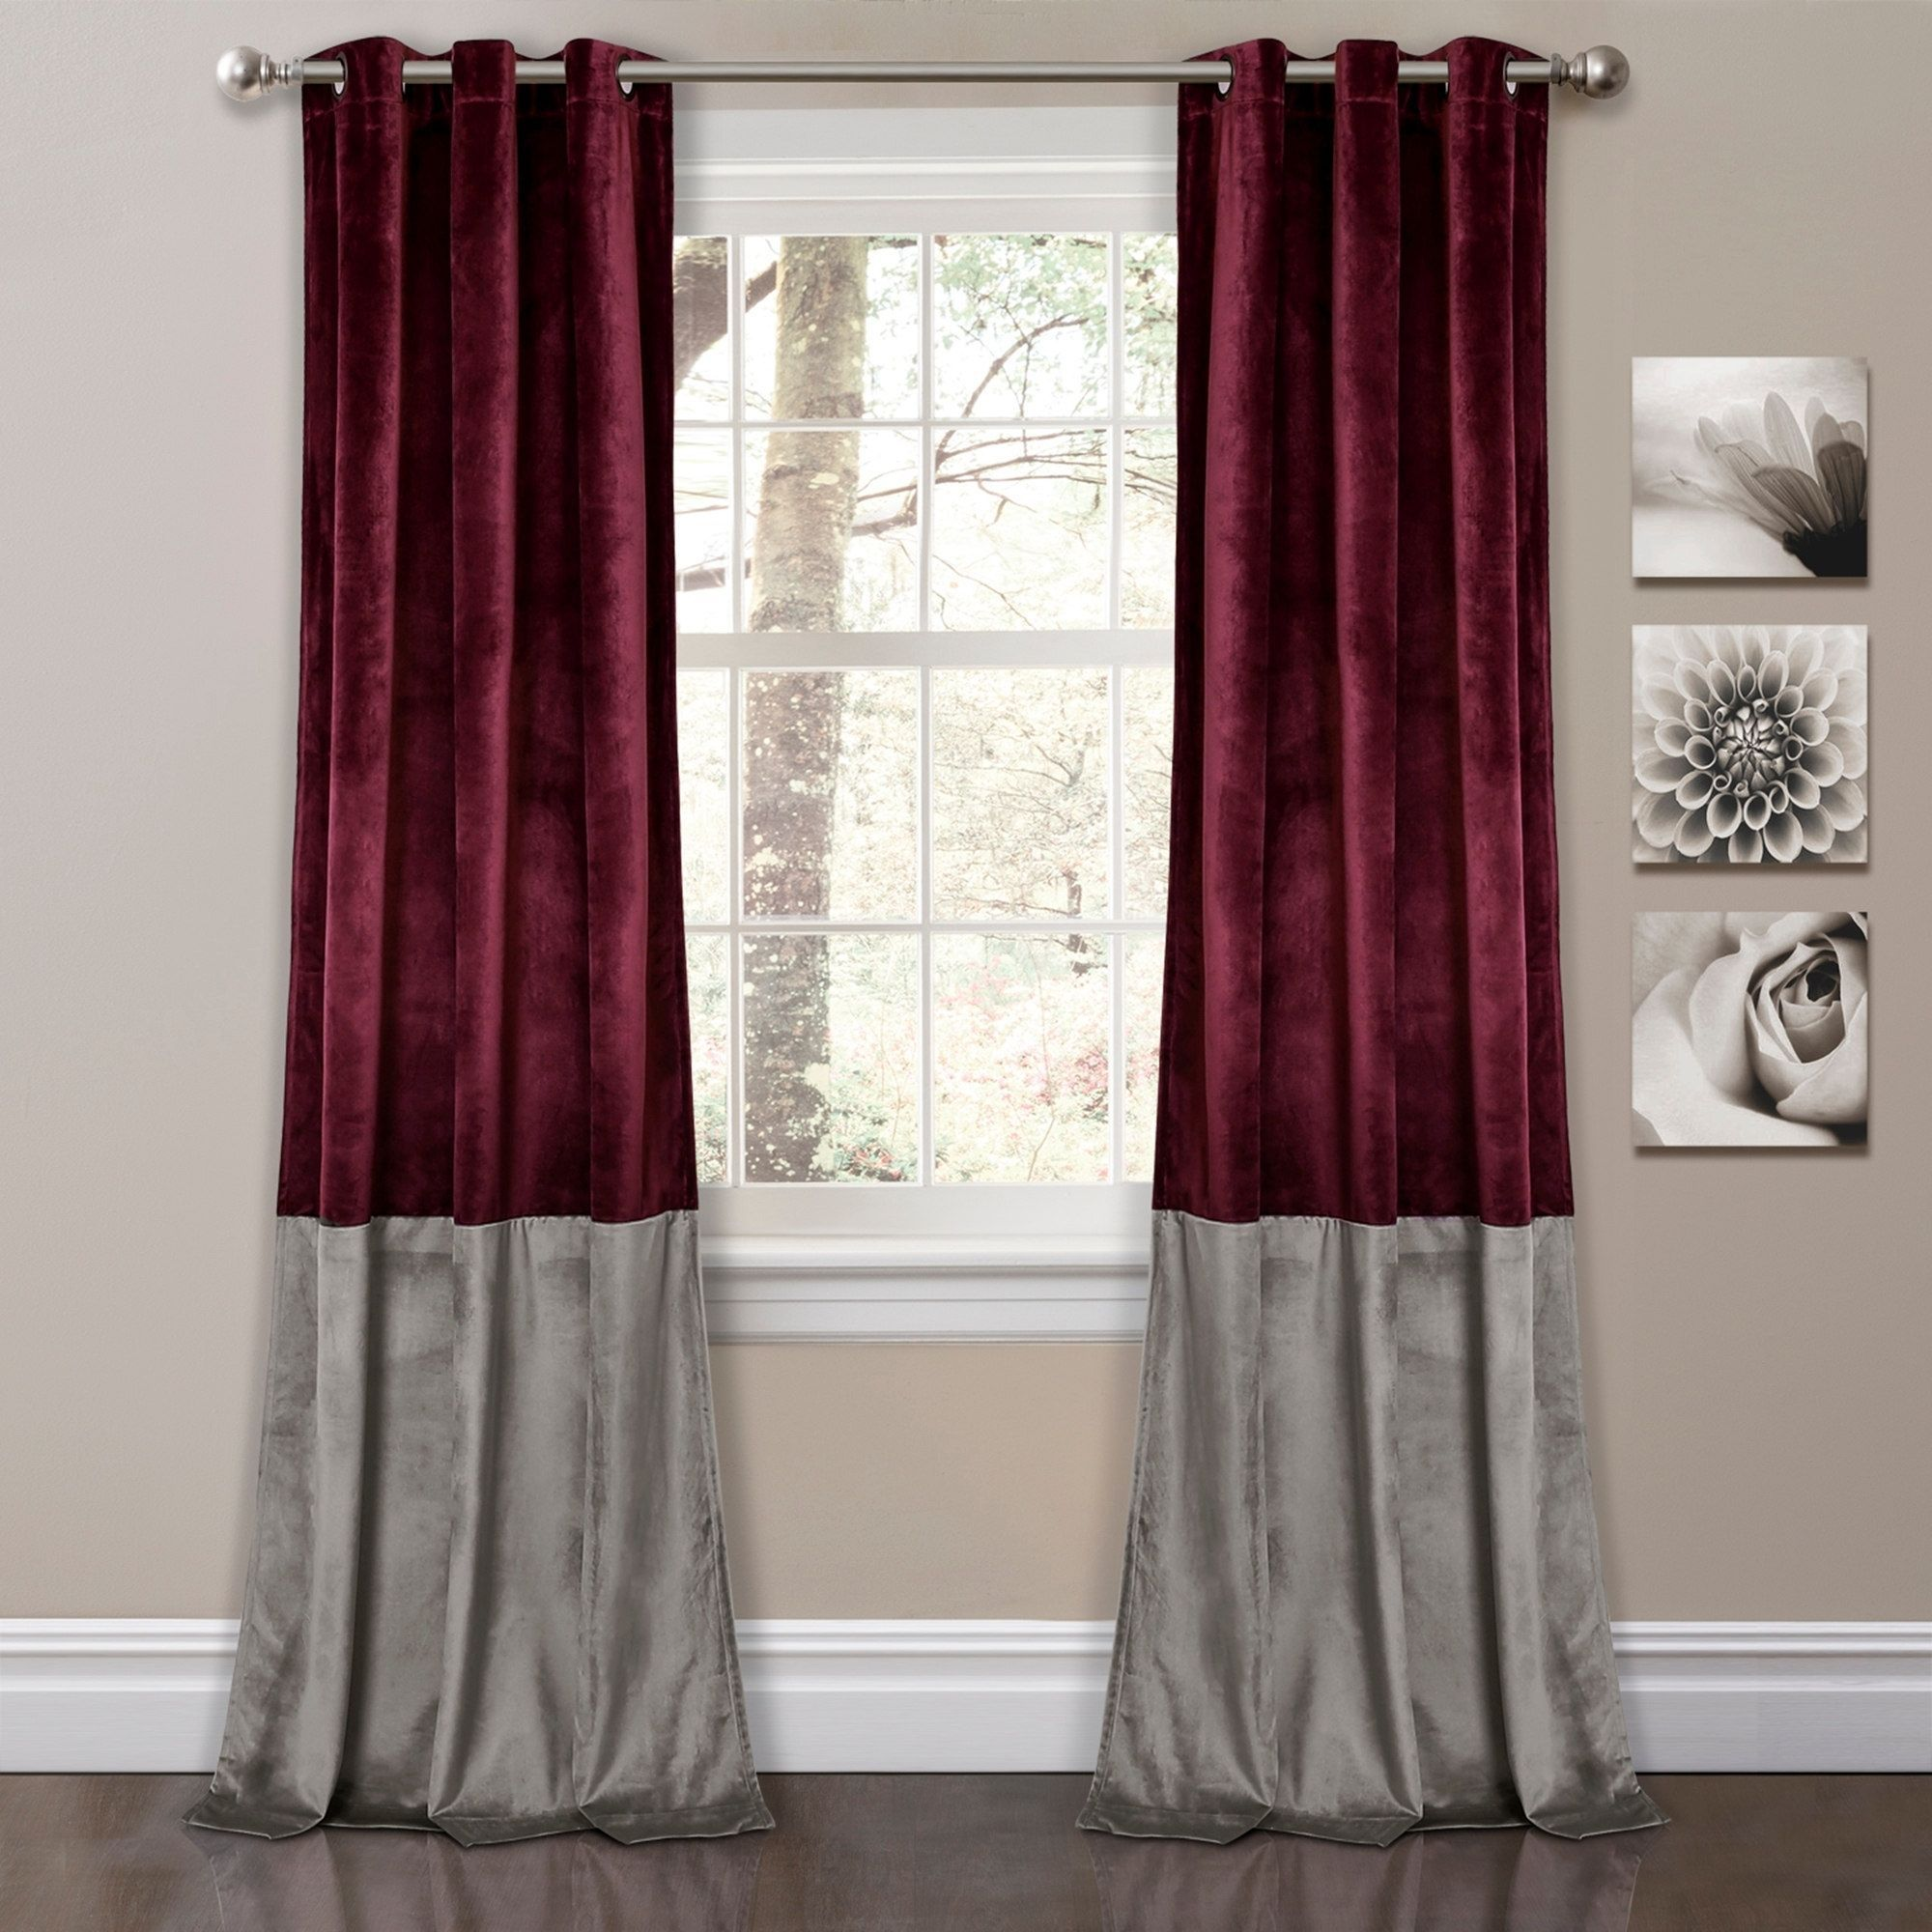 window ideas various pink curtains bedroom room rooms cute print curtain darkening drapes plum purple sheers for silver and or